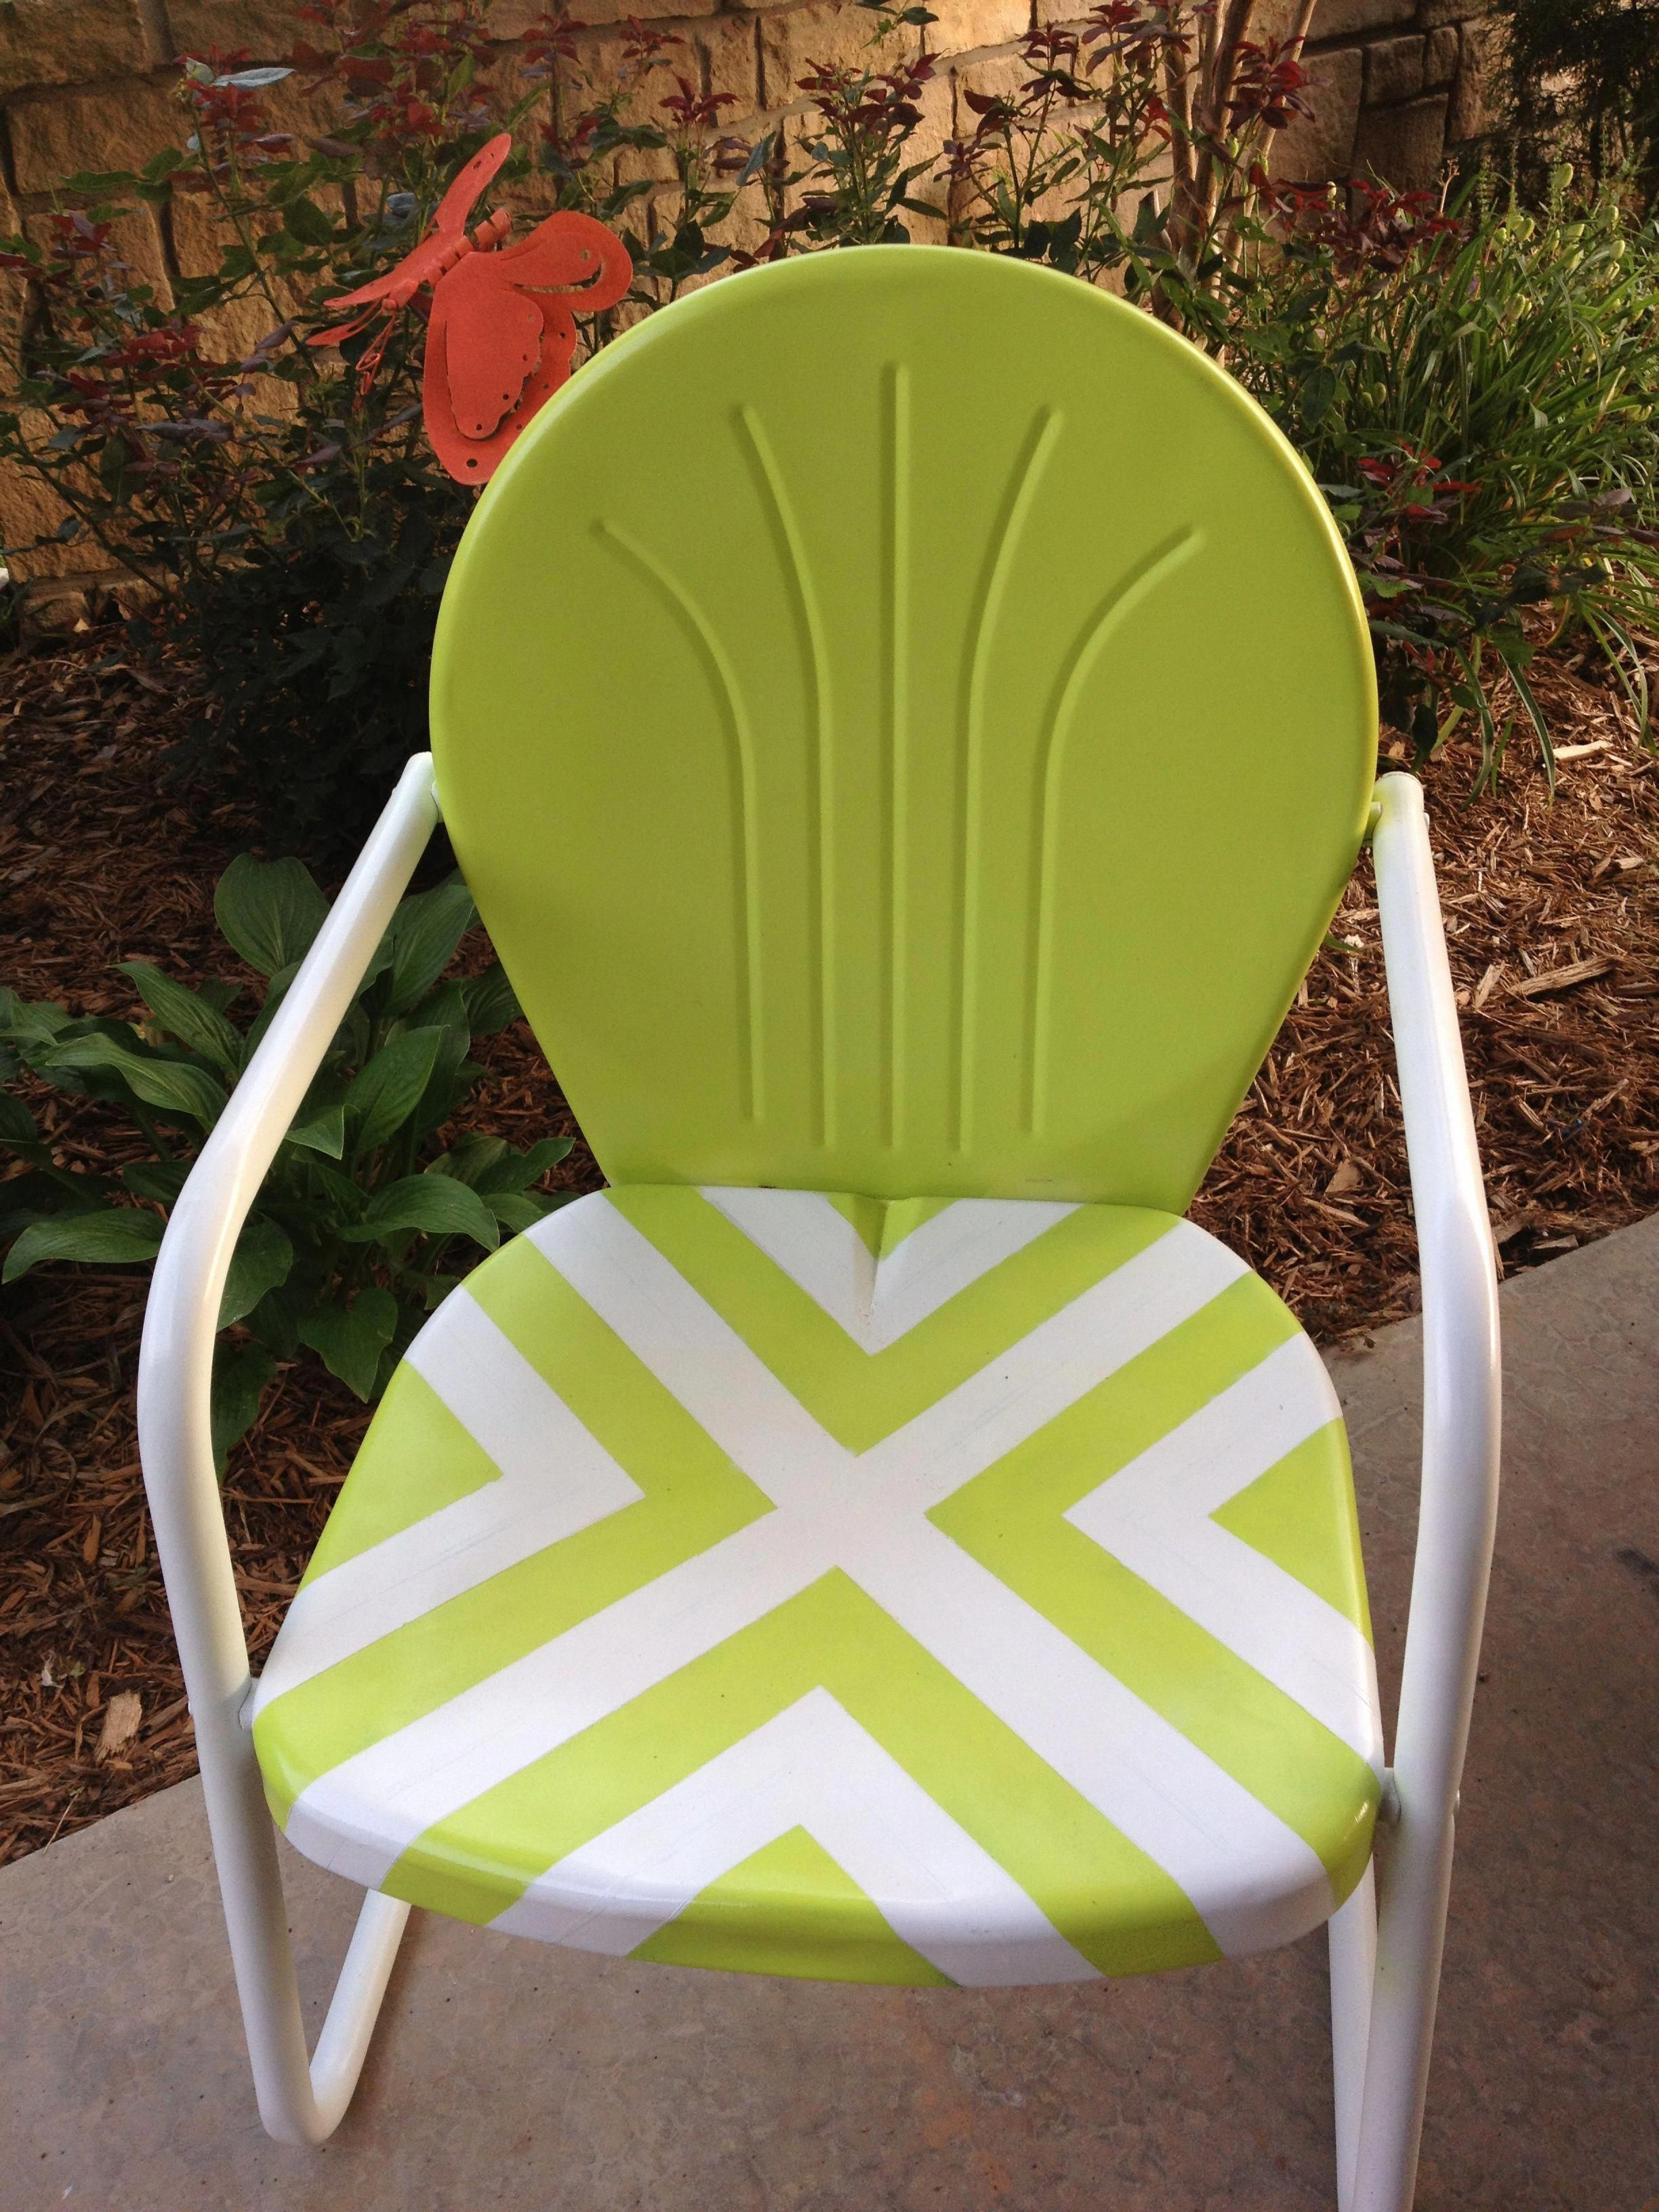 Adirondack Chairs For Sale Cheapchairsforgaming In 2020 Metal Lawn Chairs Metal Outdoor Chairs Painted Metal Chairs